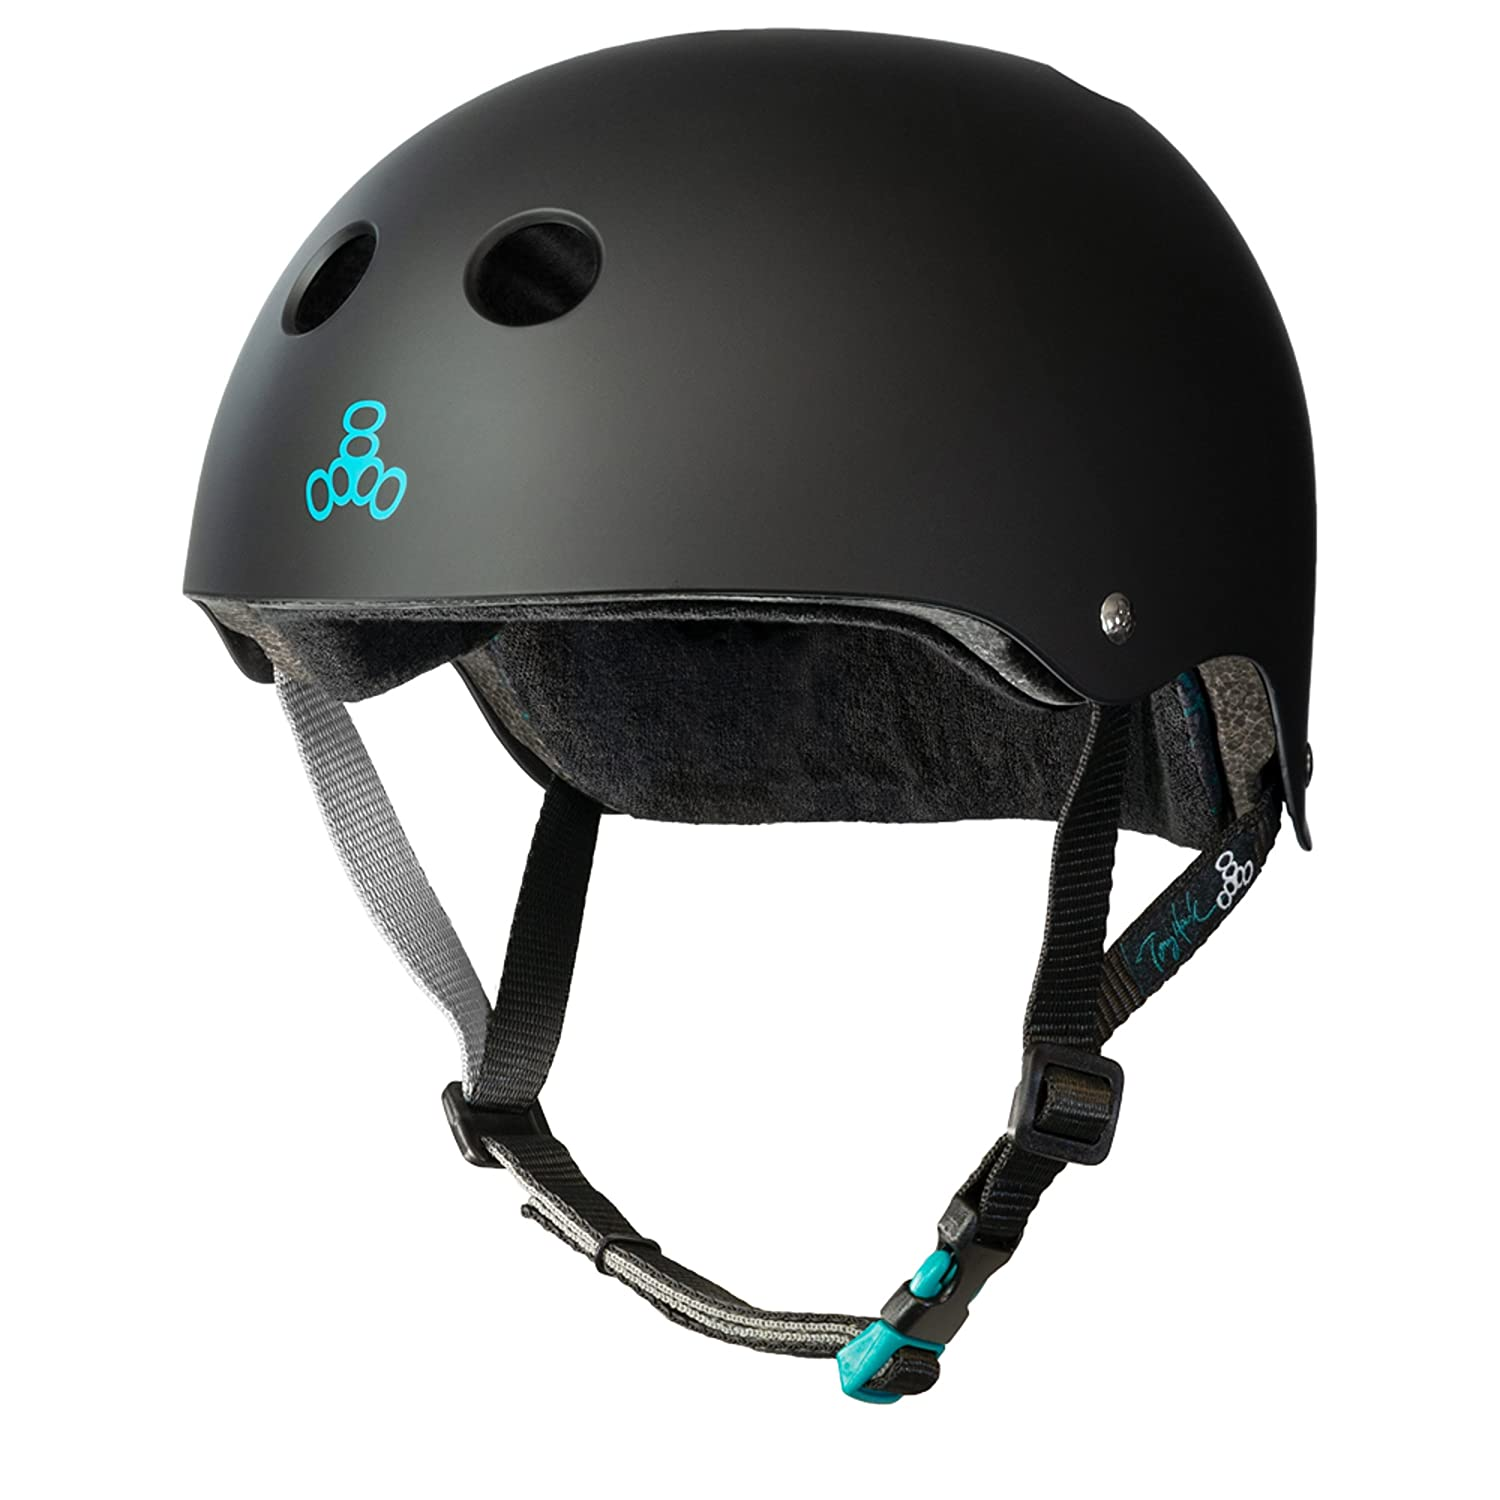 Triple Eight Tony Hawk Signature Model THE Certified Sweatsaver Helmet for Skateboarding, BMX, and Roller Skating